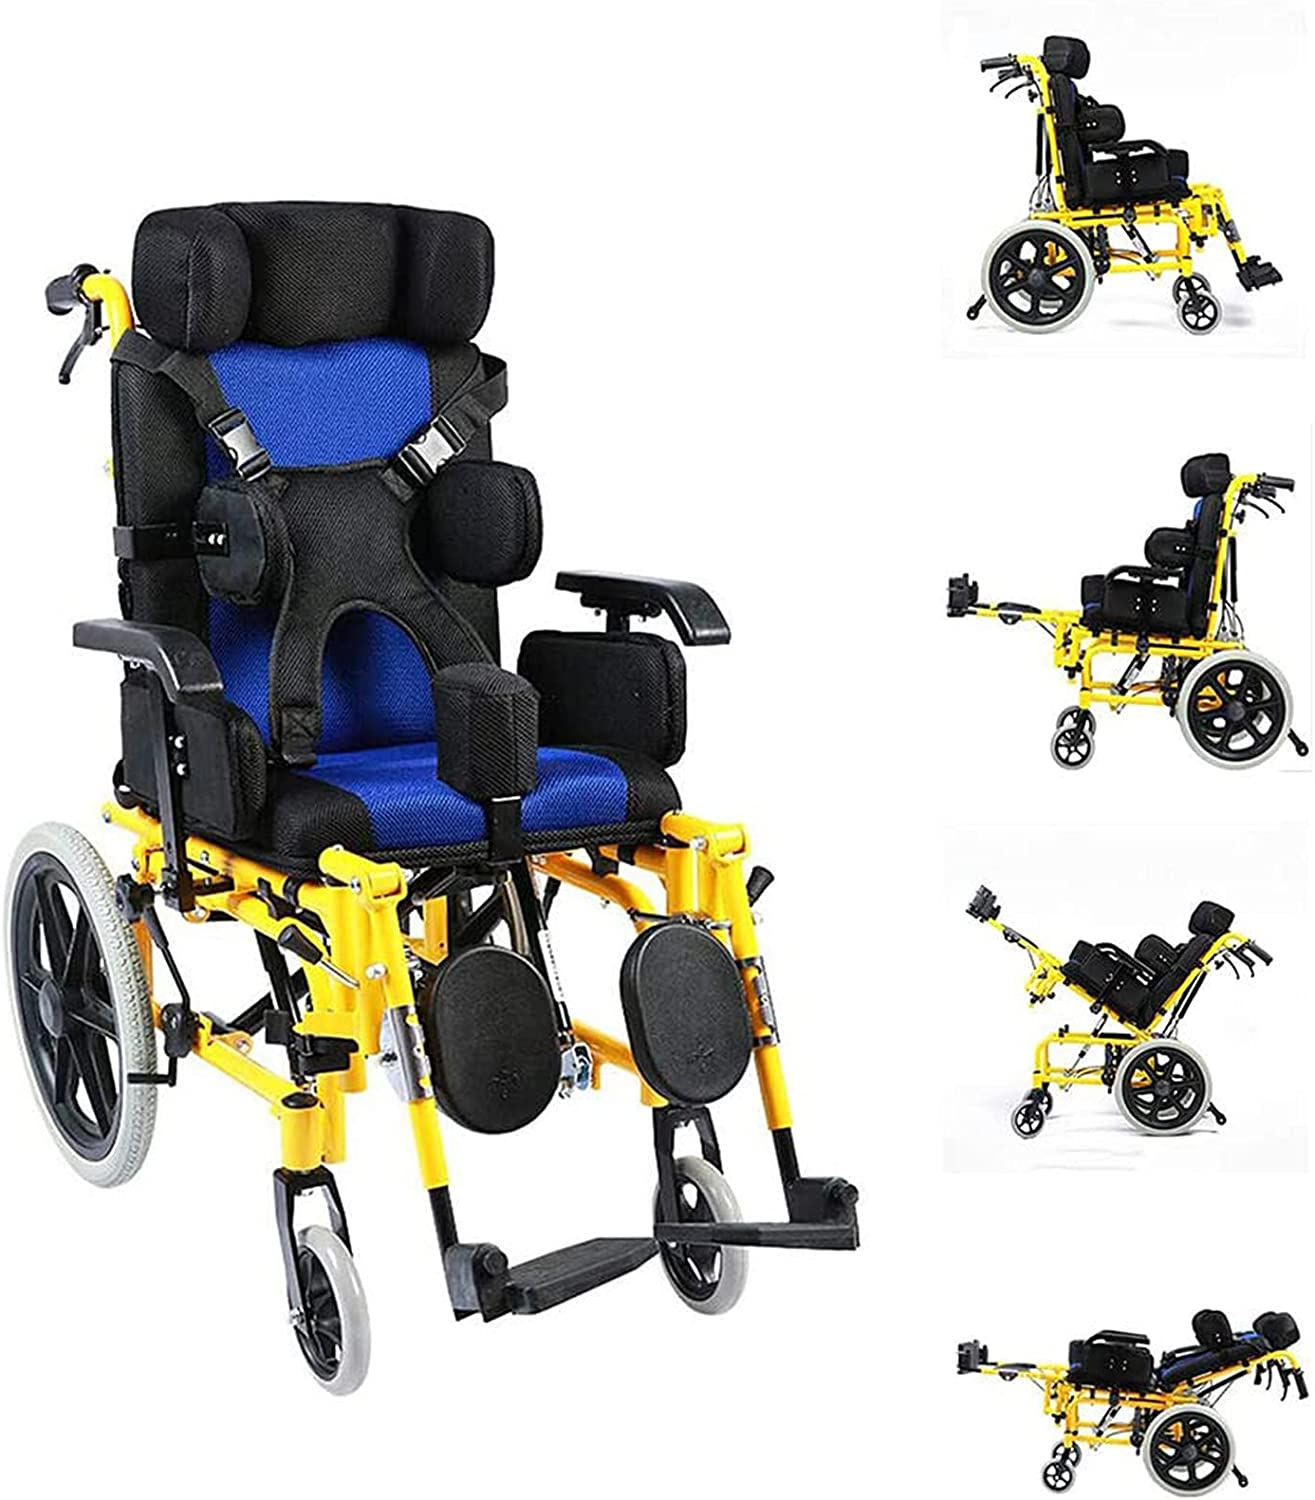 Sinctual Wheelchair Folding Lightweight Child 55% OFF for Fullyly Sale item Adult